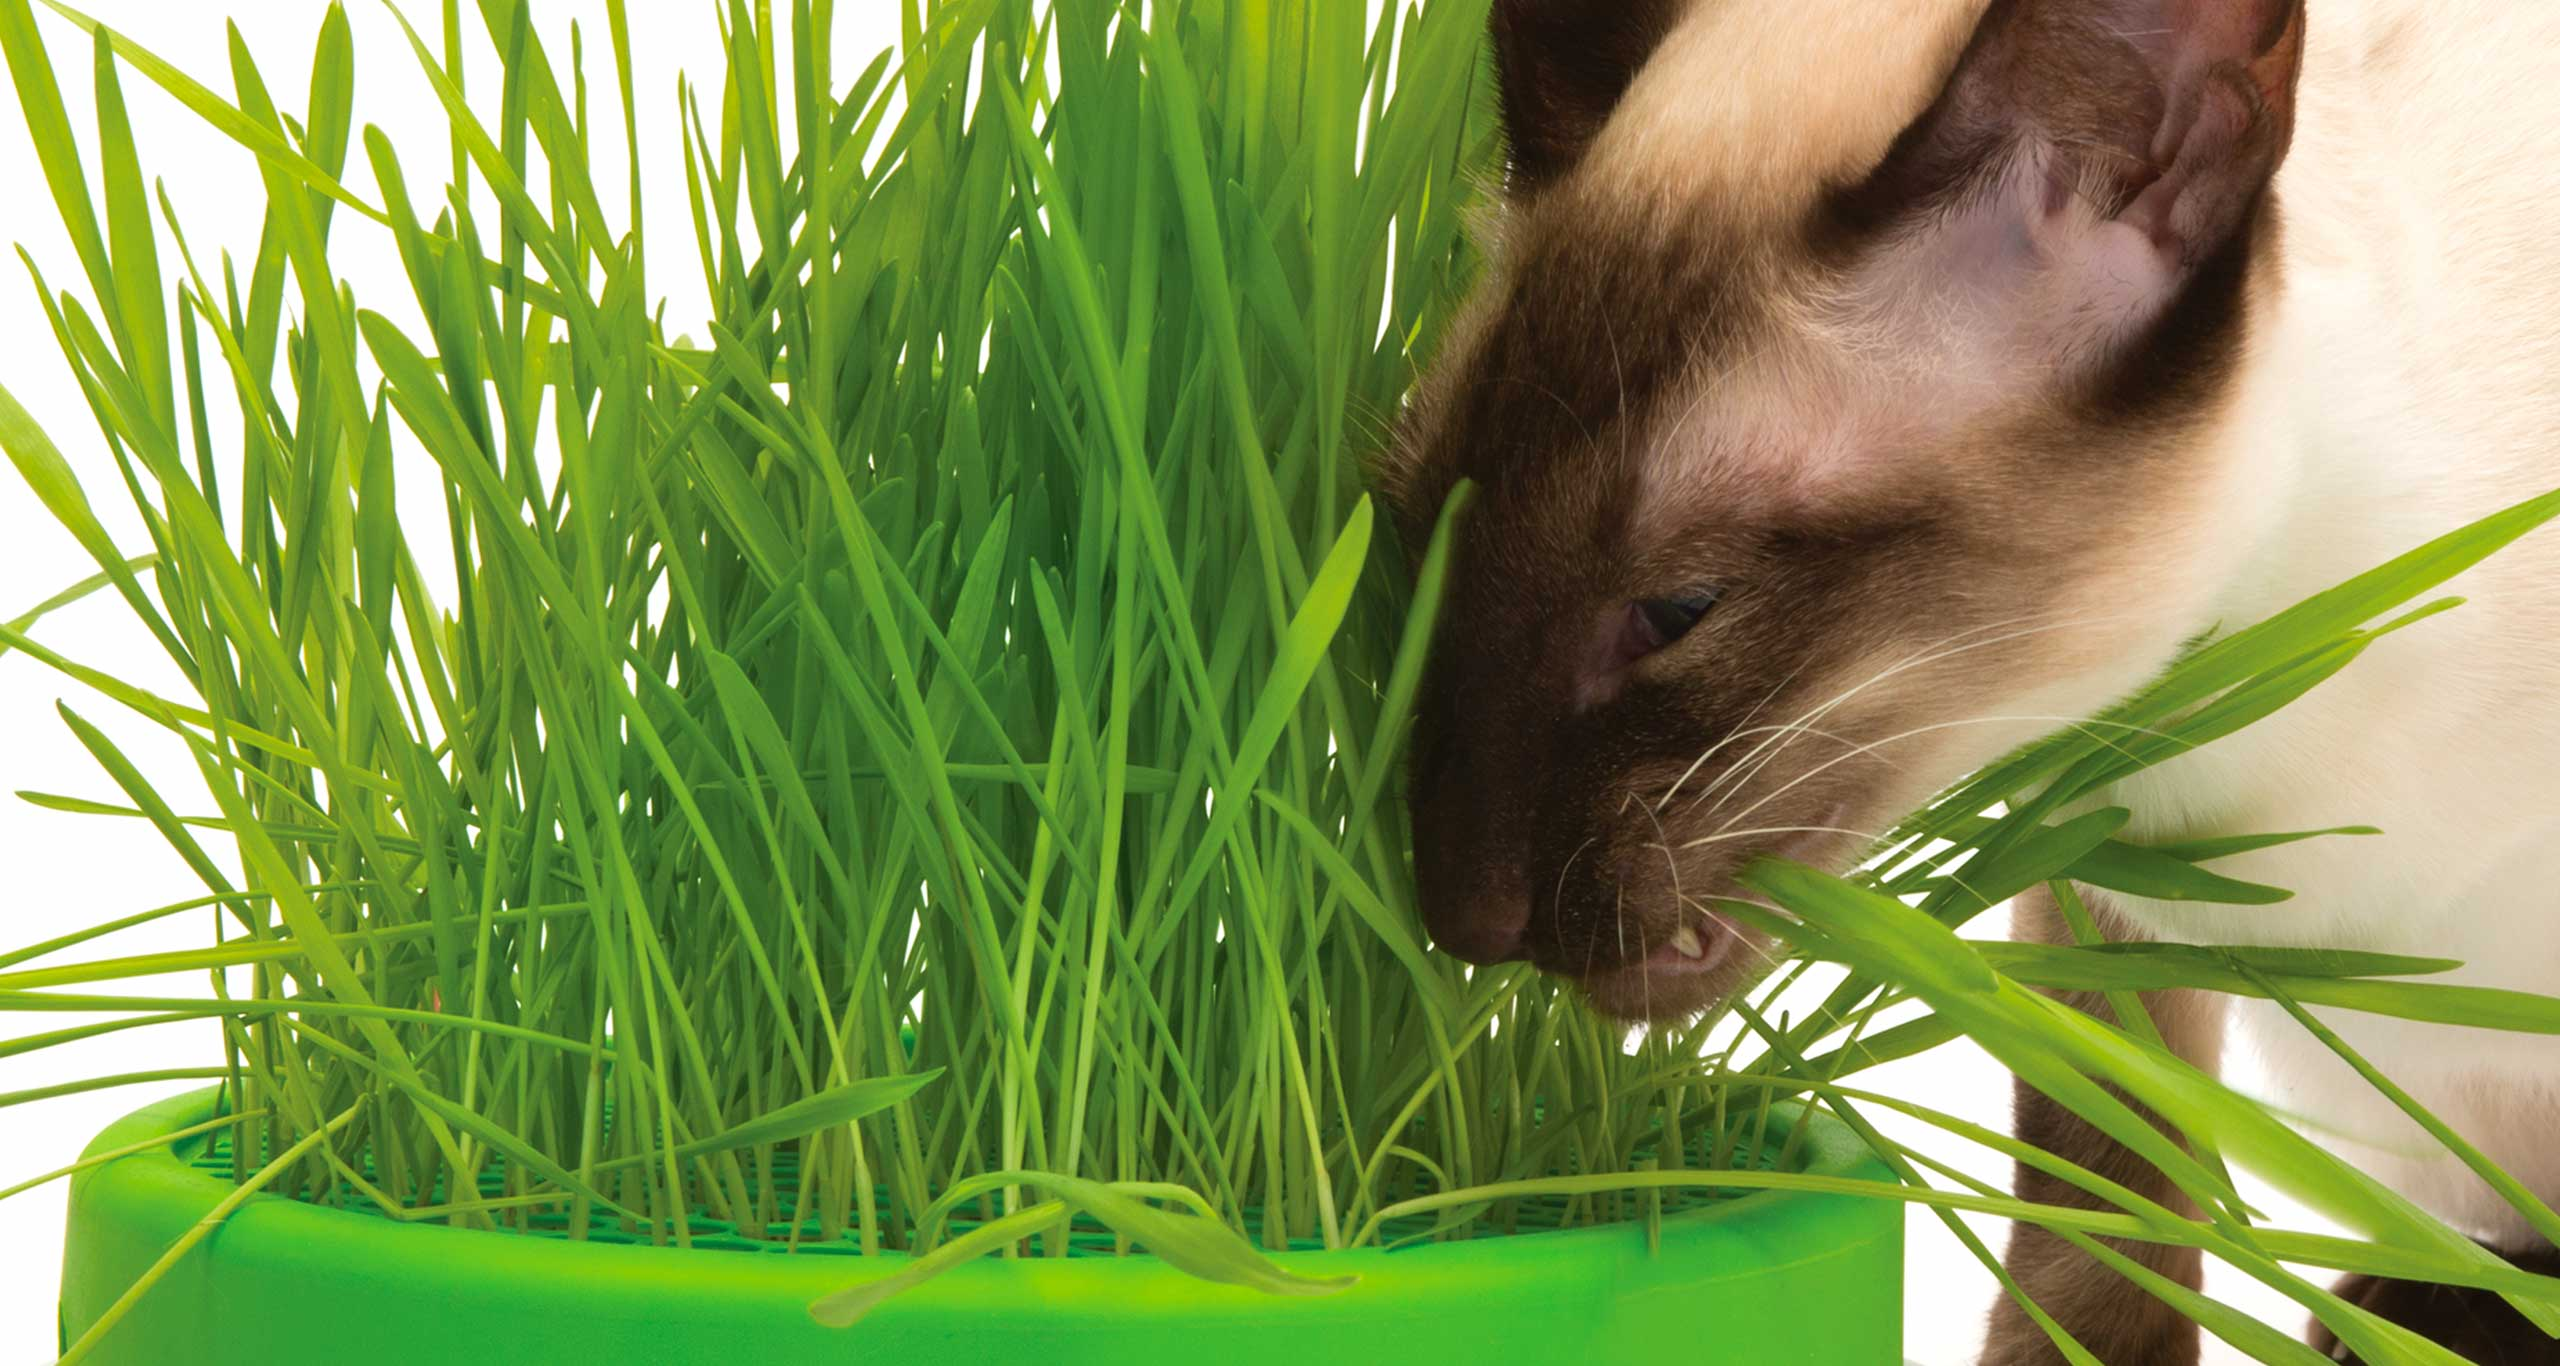 Siamese cat eating grass from the Senses 2.0 Grass Planter